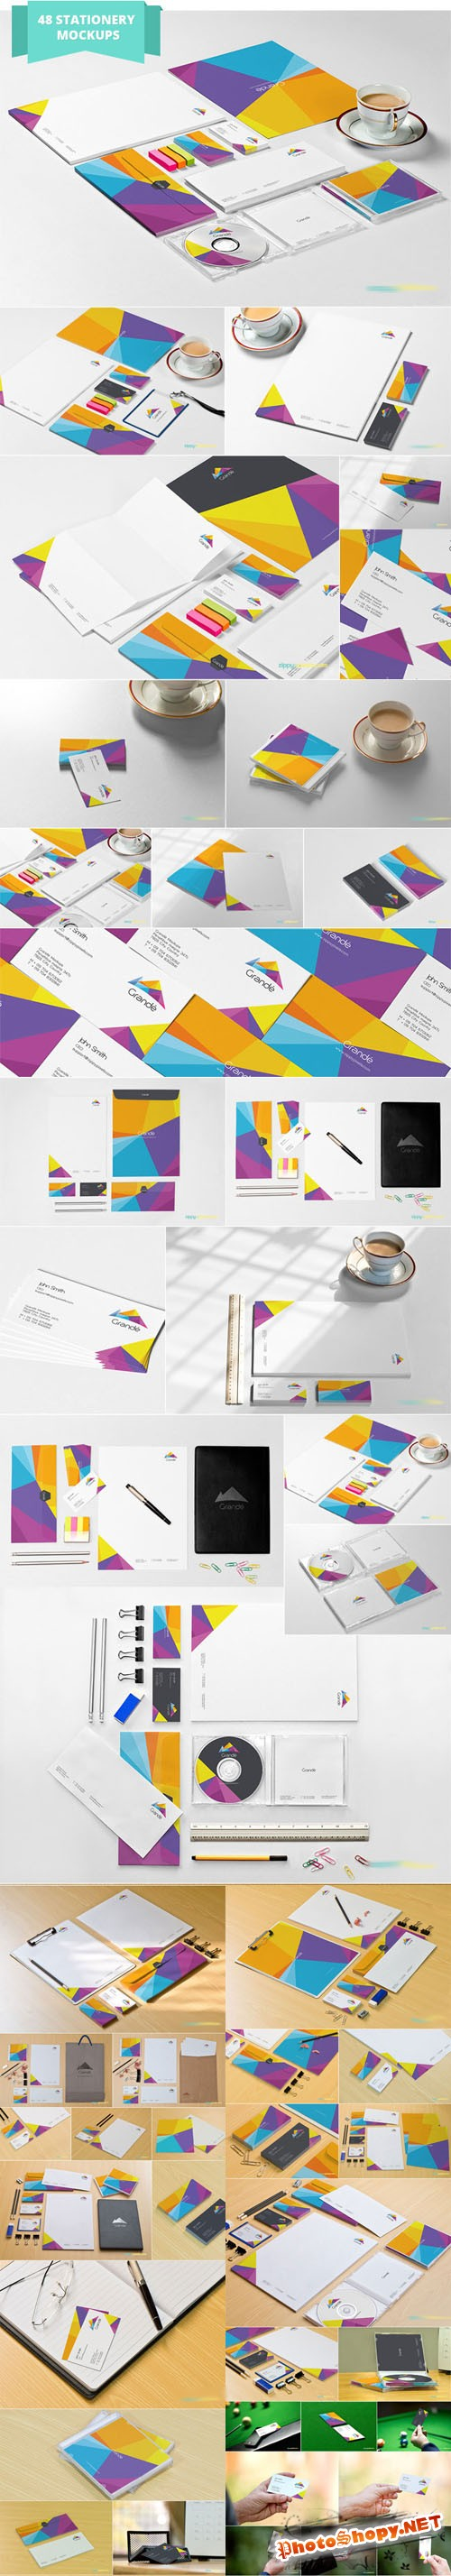 48 Stationery Mockups - Zippypixels